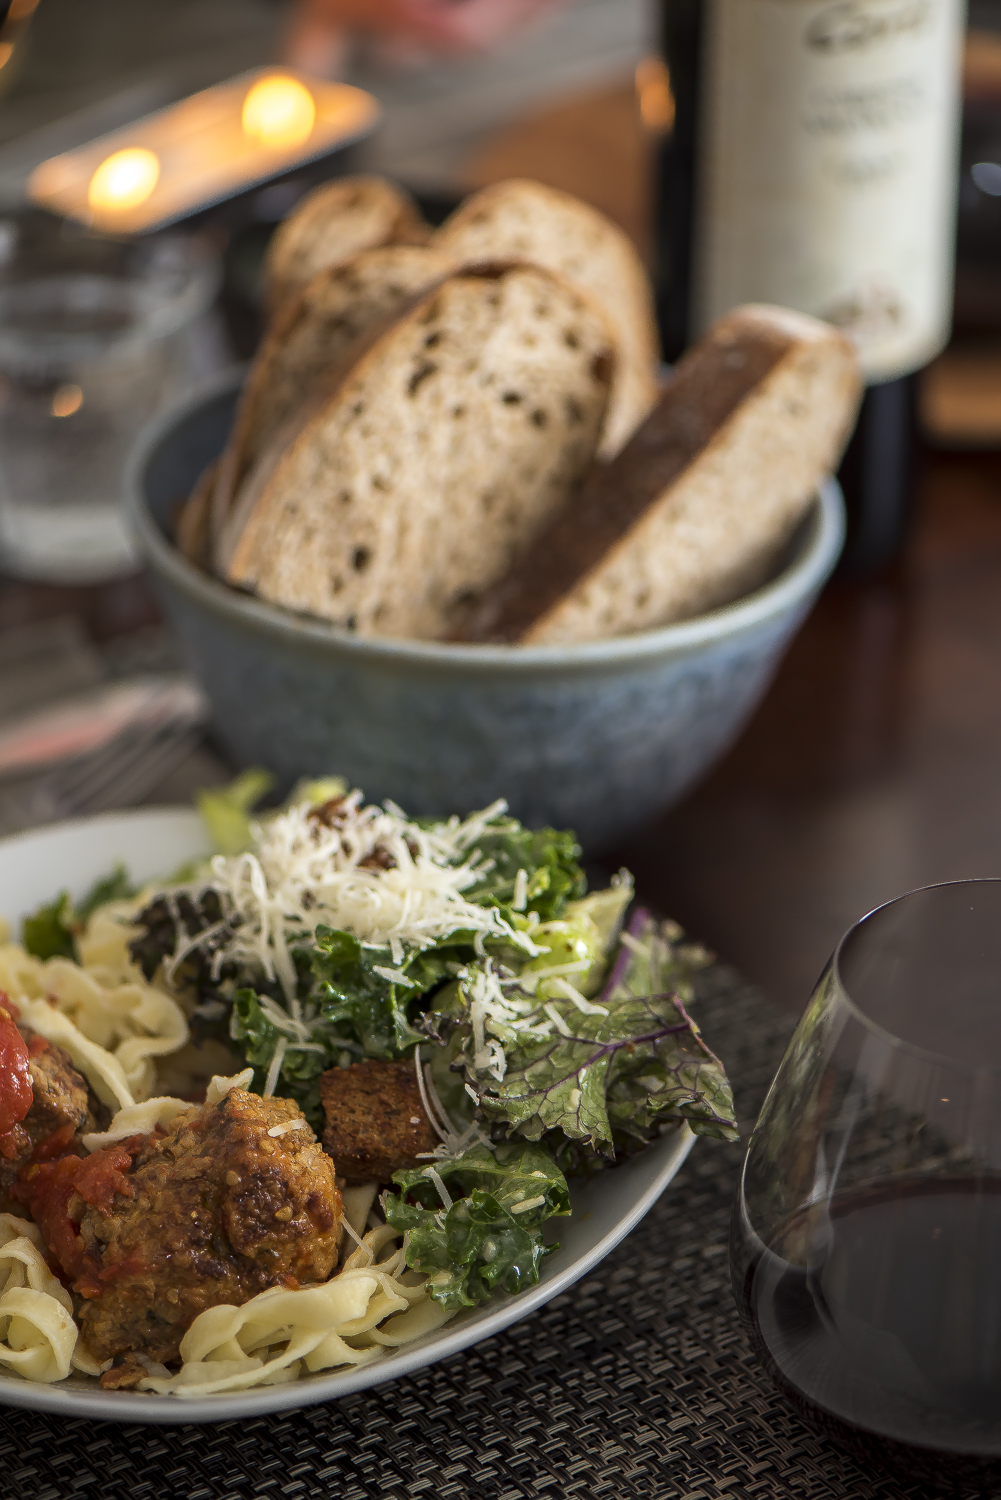 FAT-Pasta-and-Meatballs-Four-Amongst-Three-Vancouver-Food-Blog-119.jpg